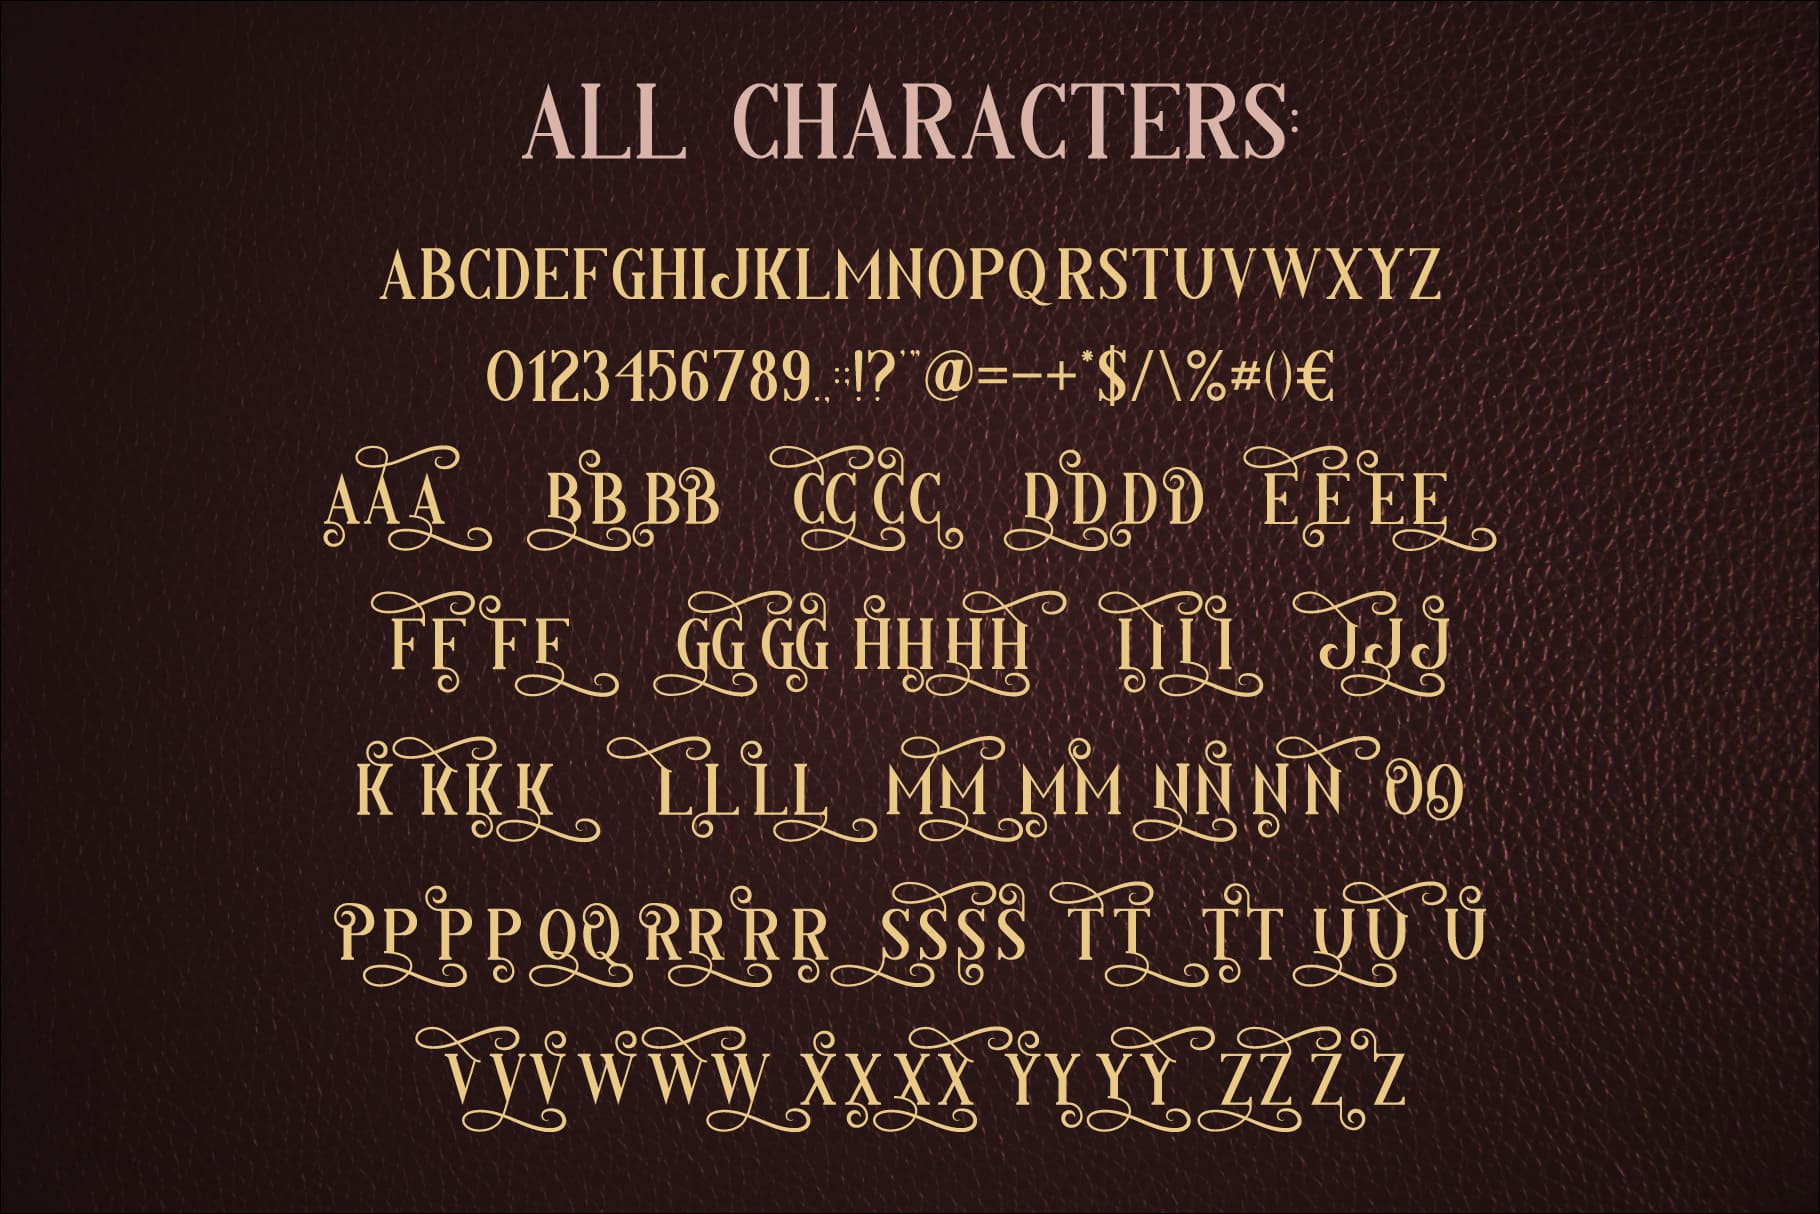 Available characters of Fairy Tale Typeface.